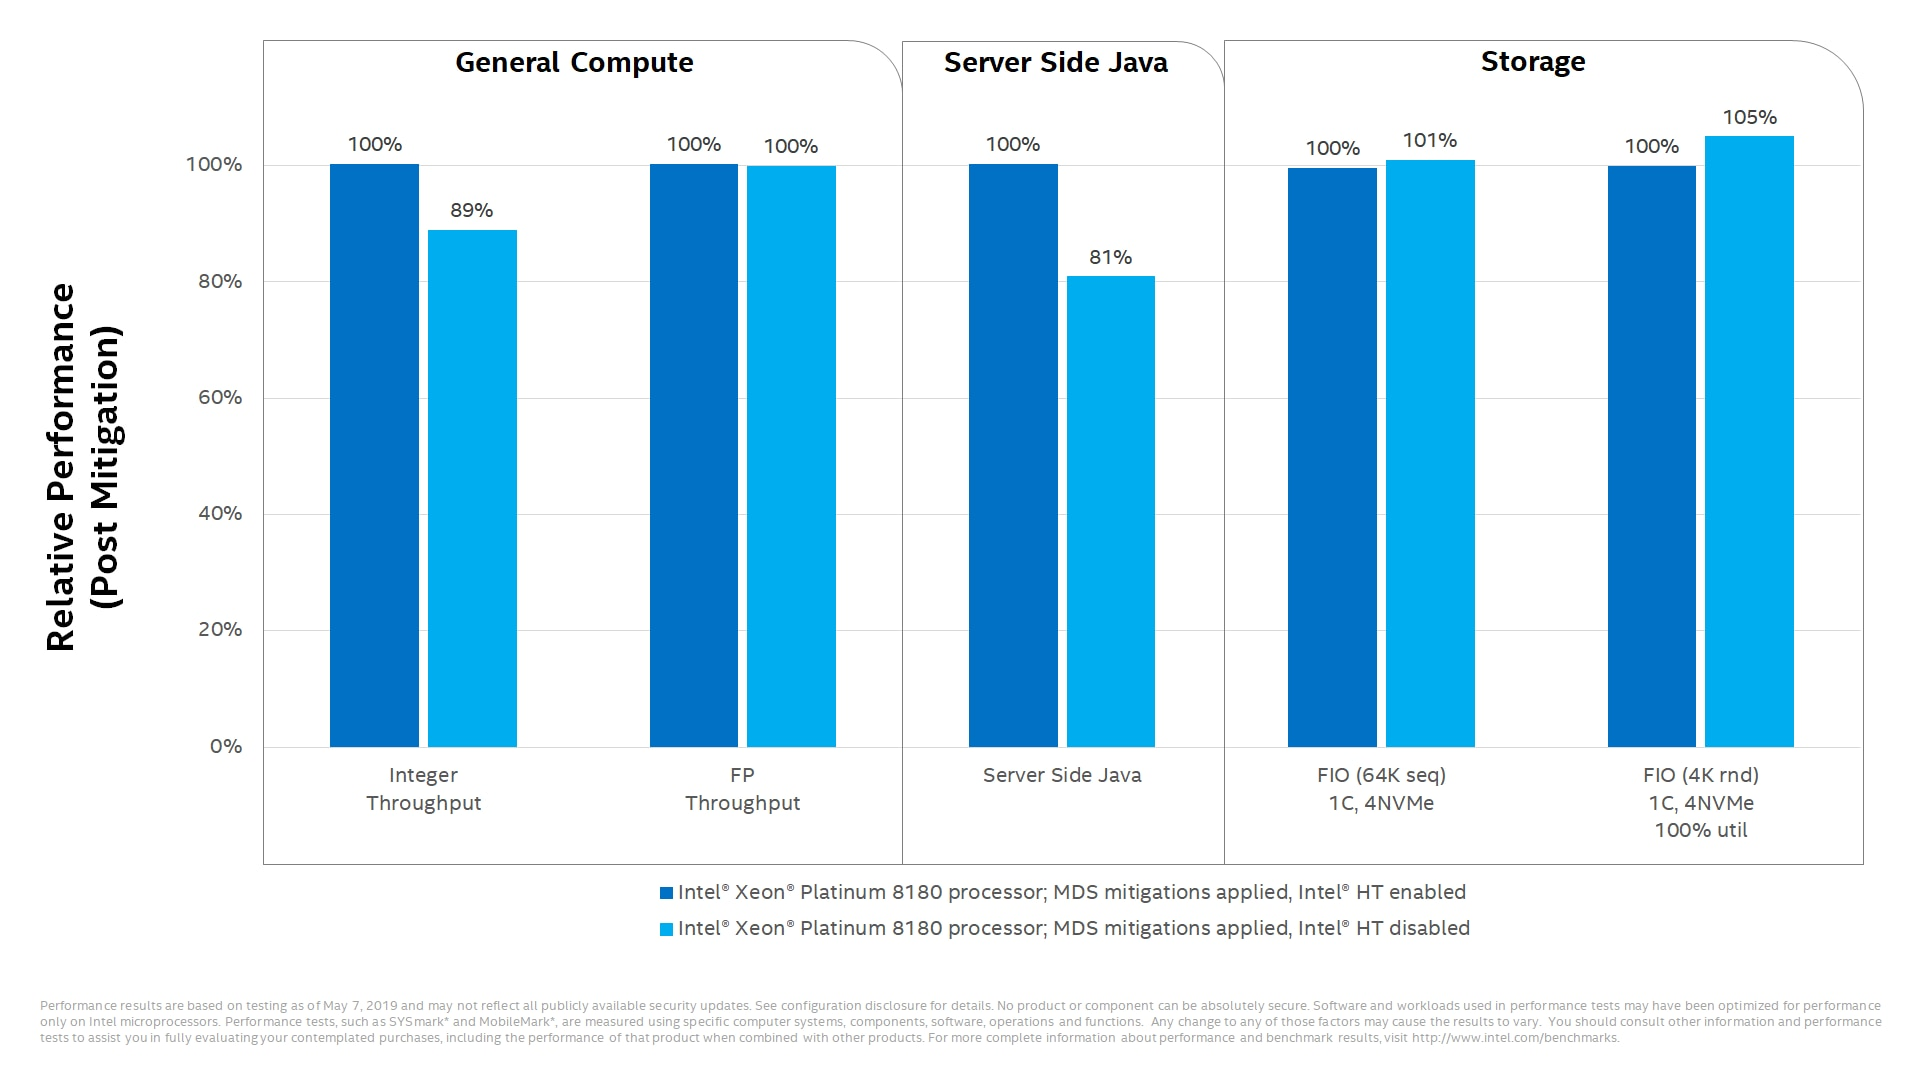 Some performance impact to select data center workloads with Intel® HT disabled